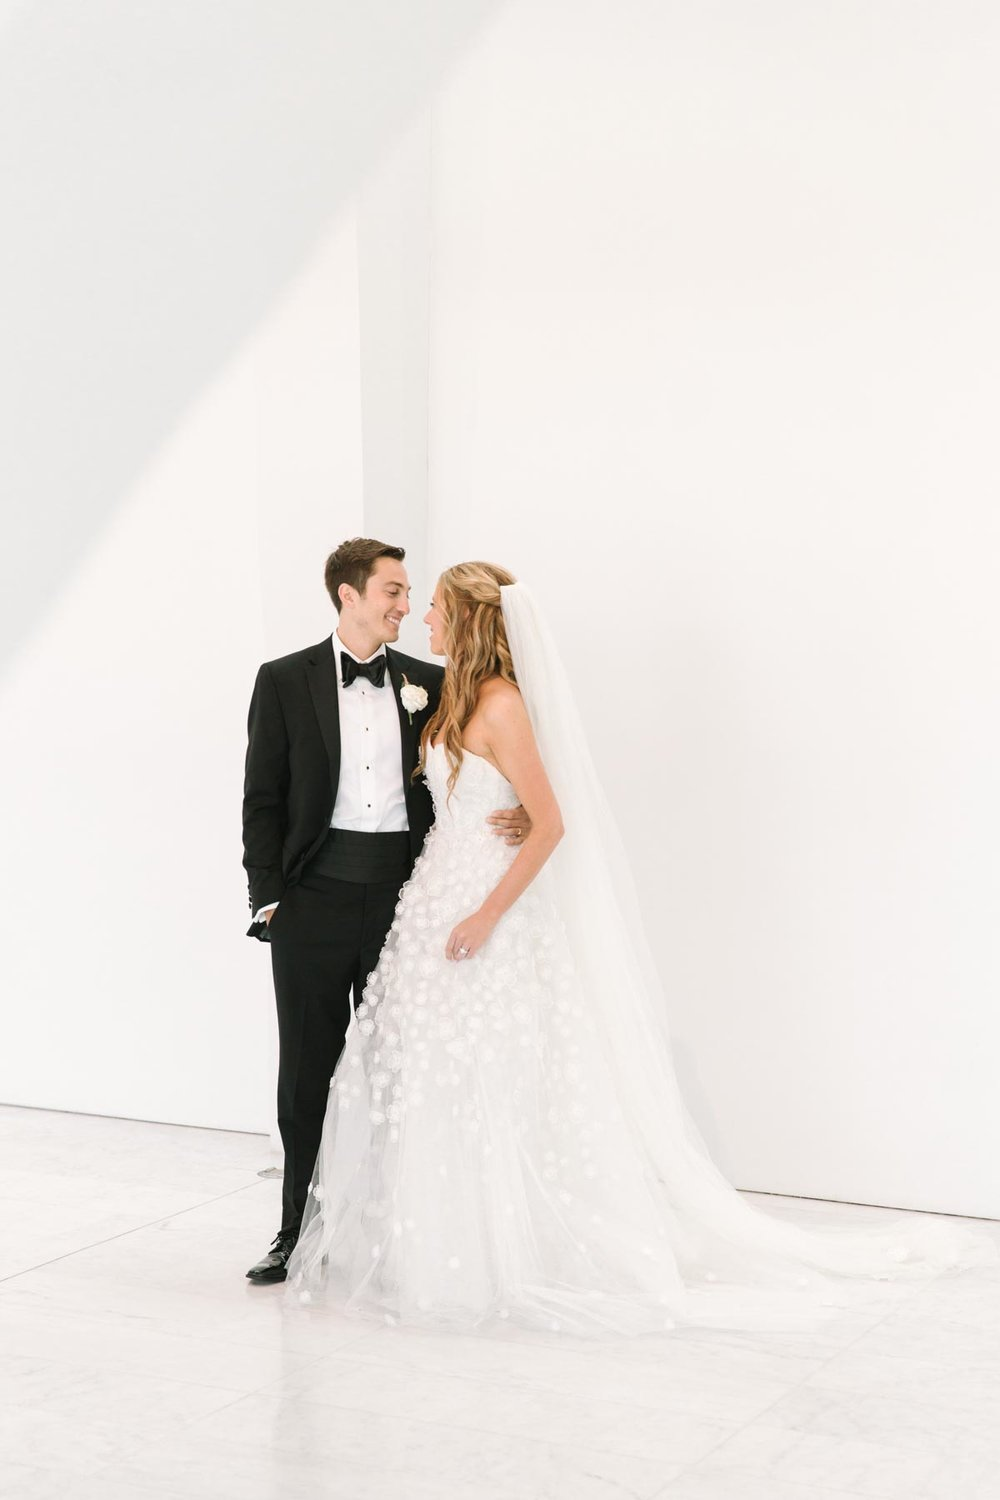 kateweinsteinphoto_milwaukee_art_museum_wedding-149.jpg